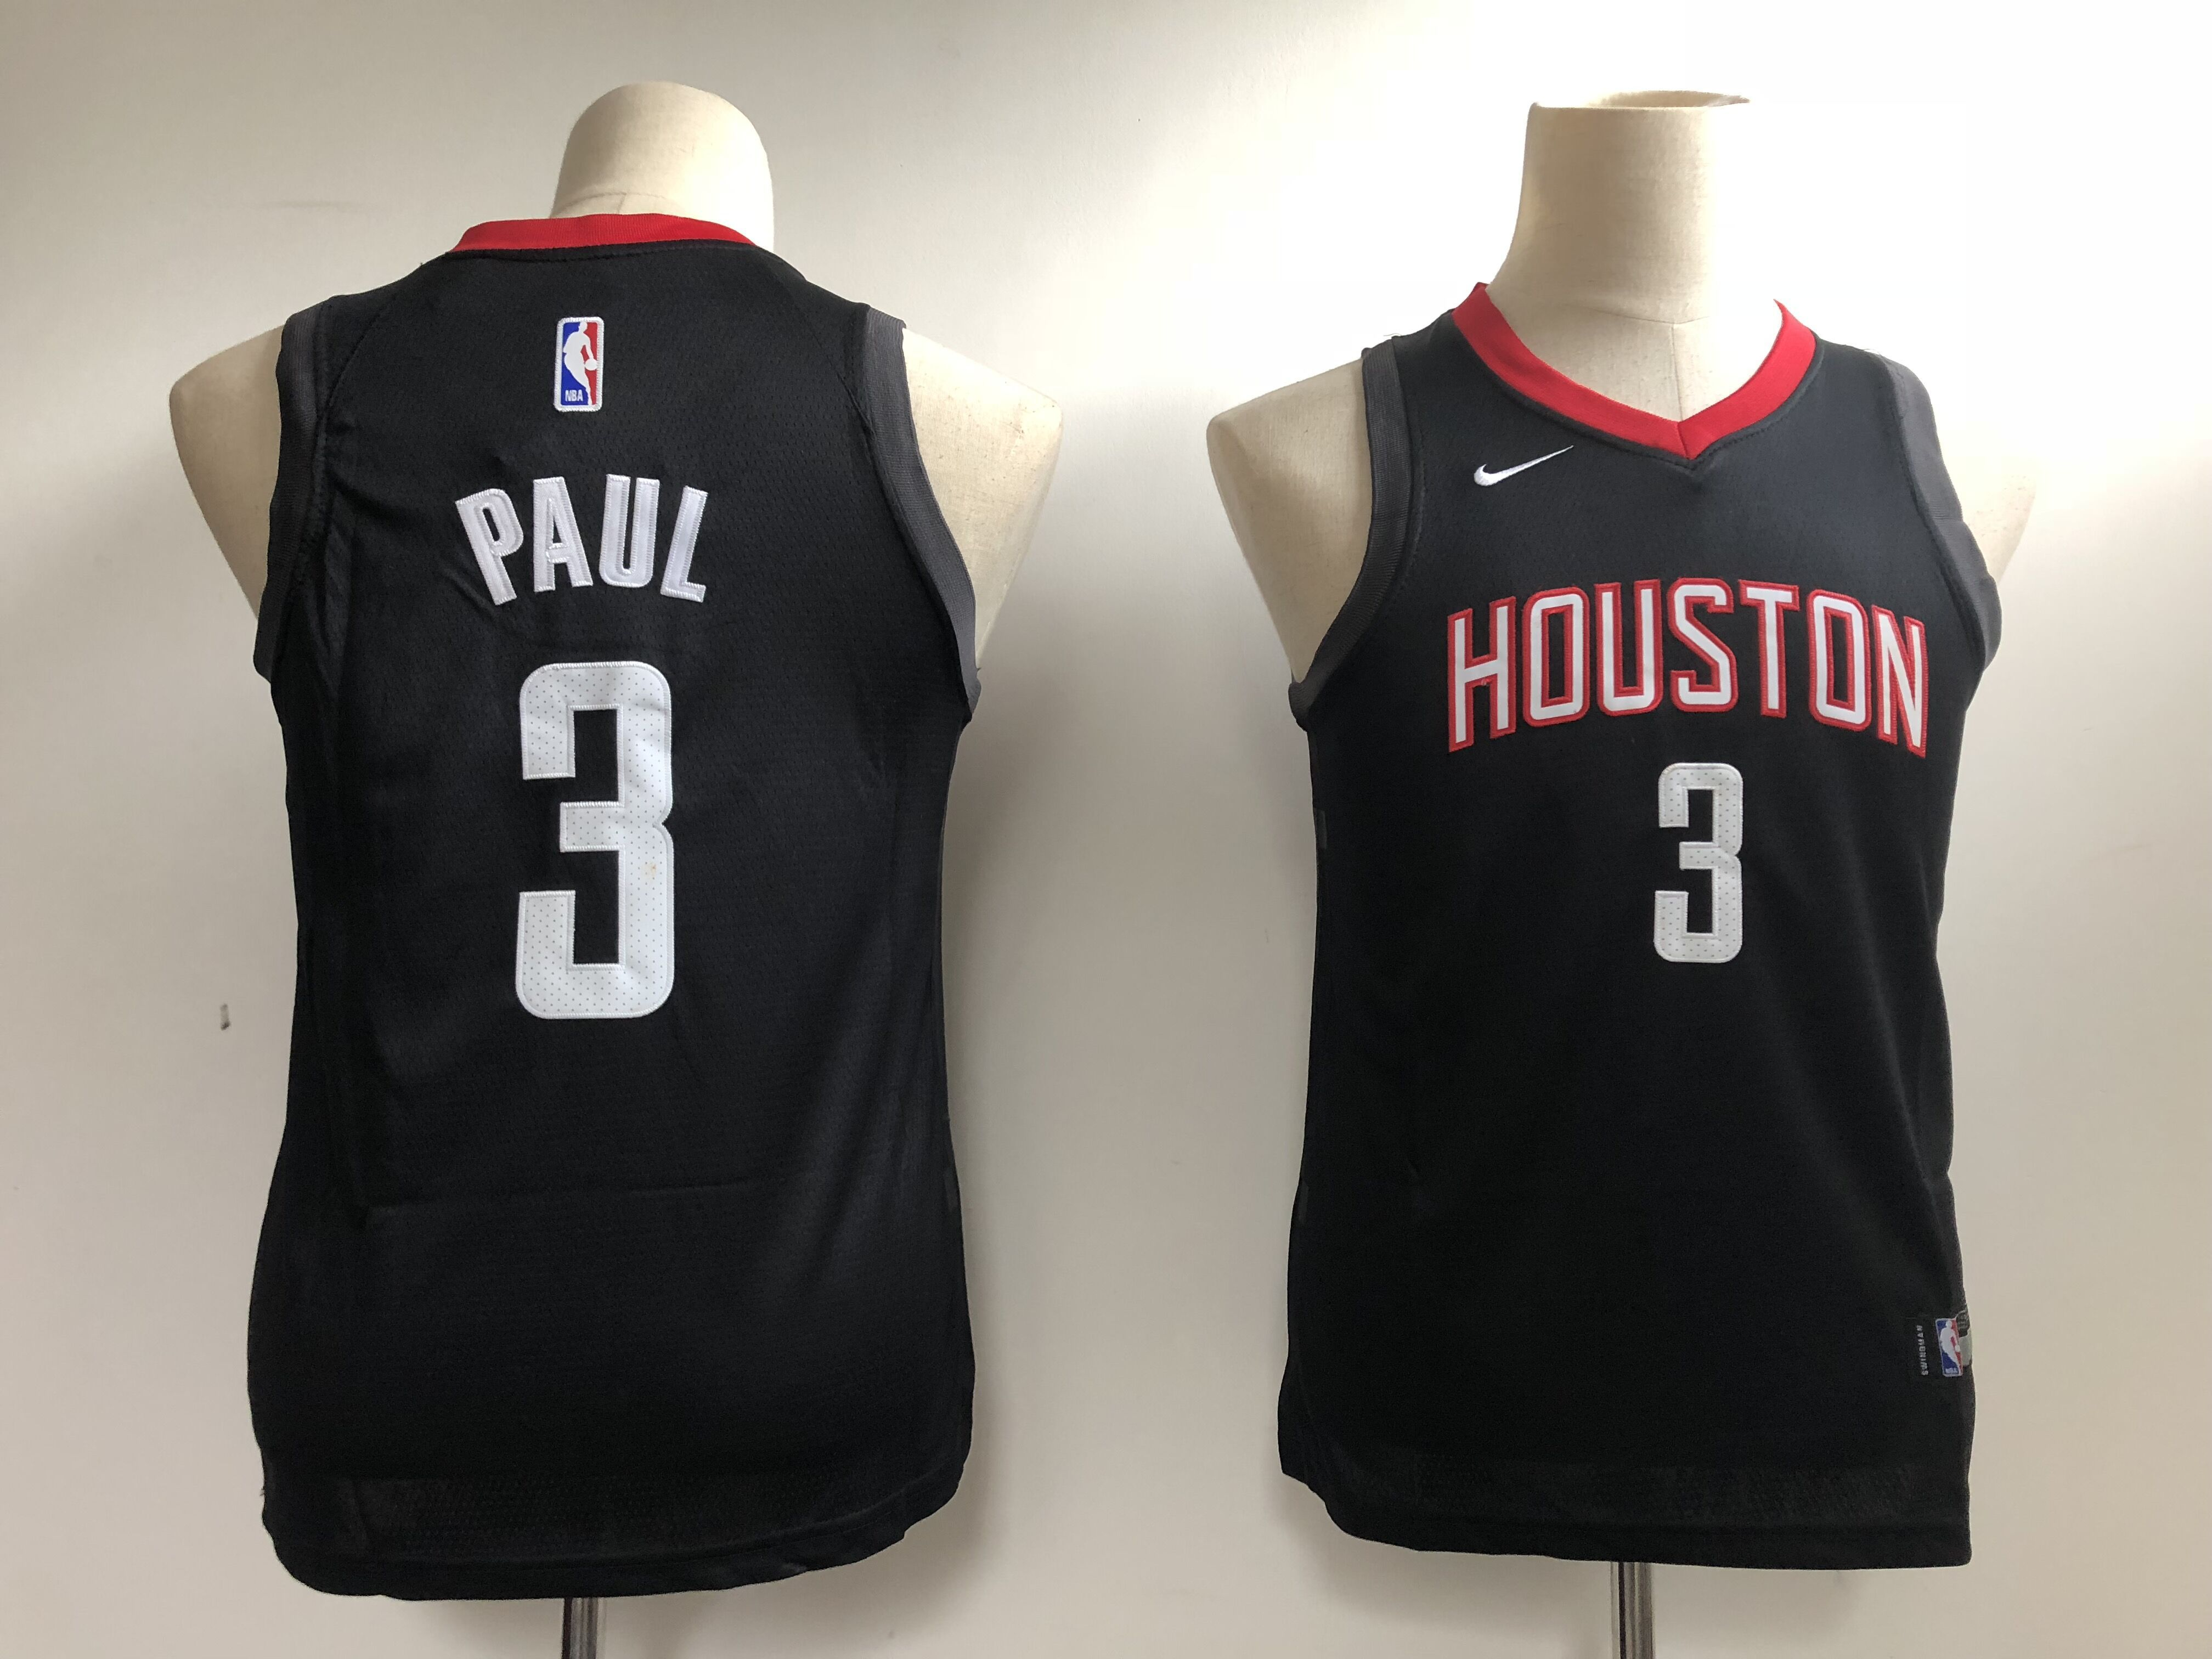 Youth Houston Rockets 3 Paul Black Nike NBA Jerseys